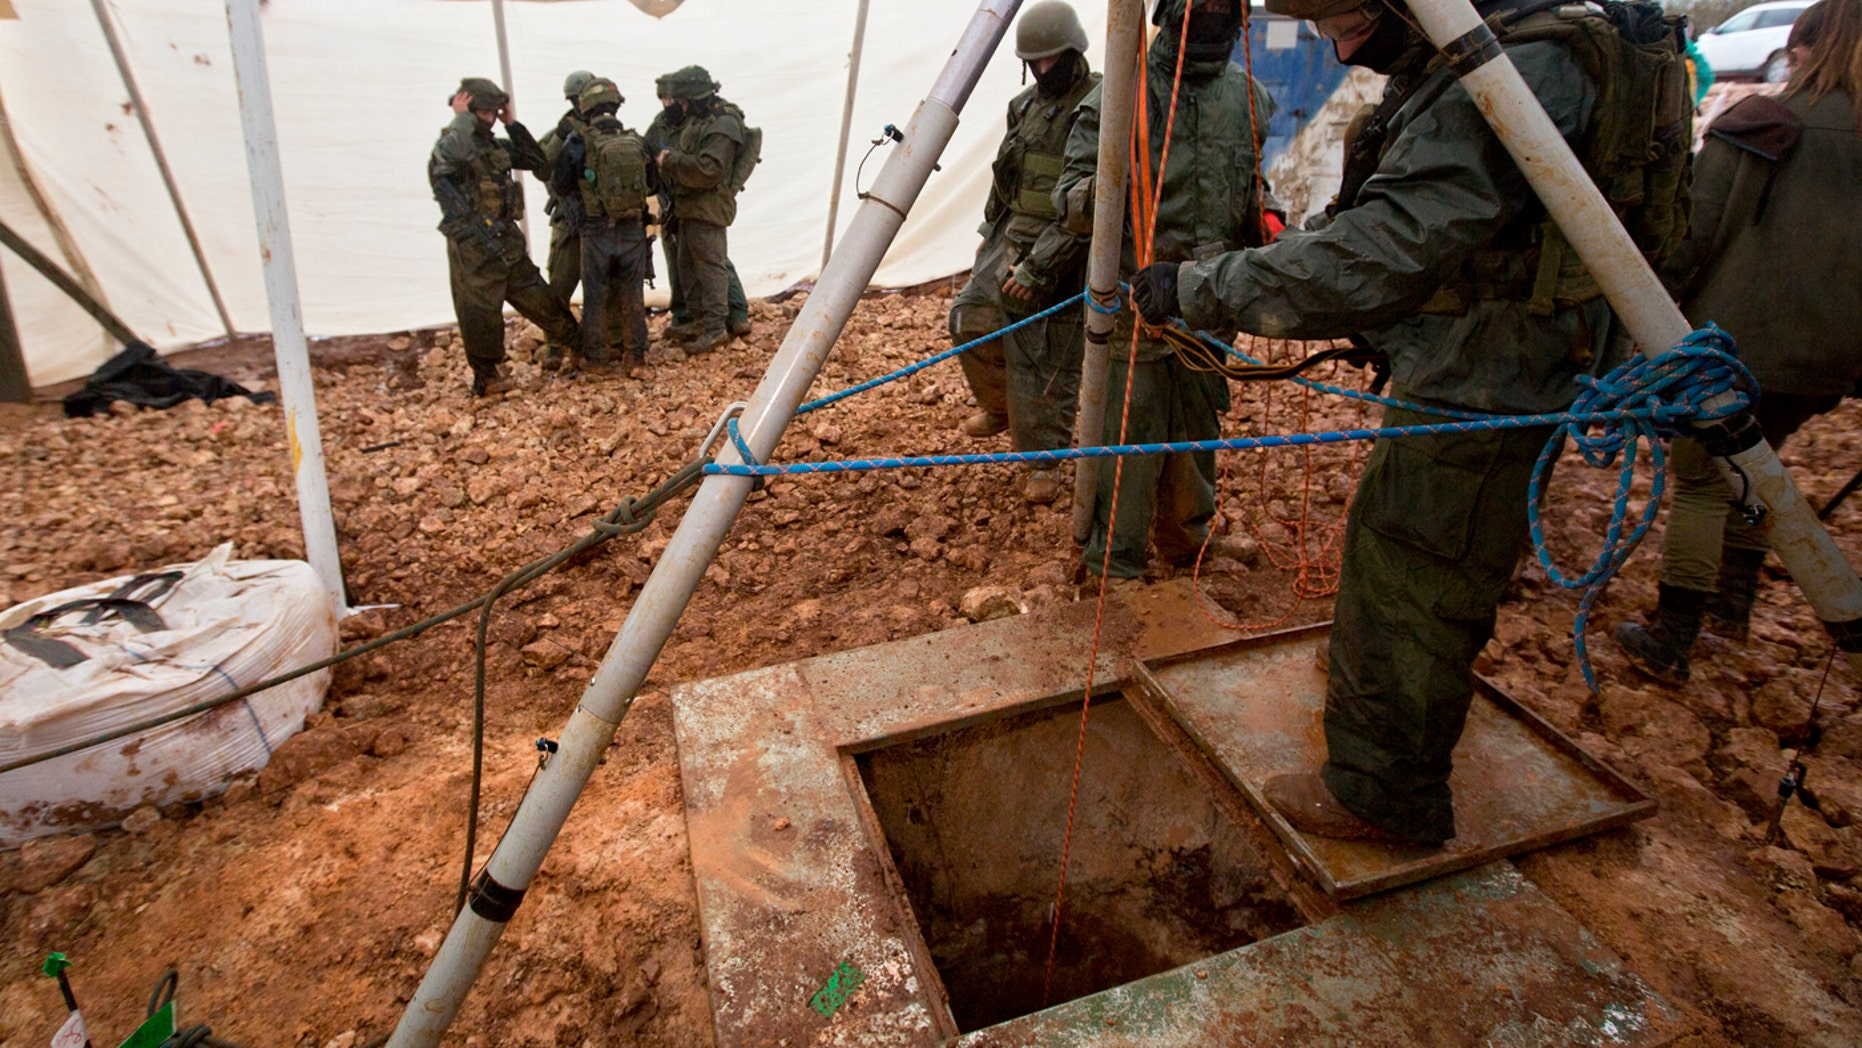 In this Wednesday, Dec. 19, 2018 file photo, Israeli soldiers stand around the opening of a hole that leads to a tunnel that the army says crosses from Lebanon to Israel, near Metula.